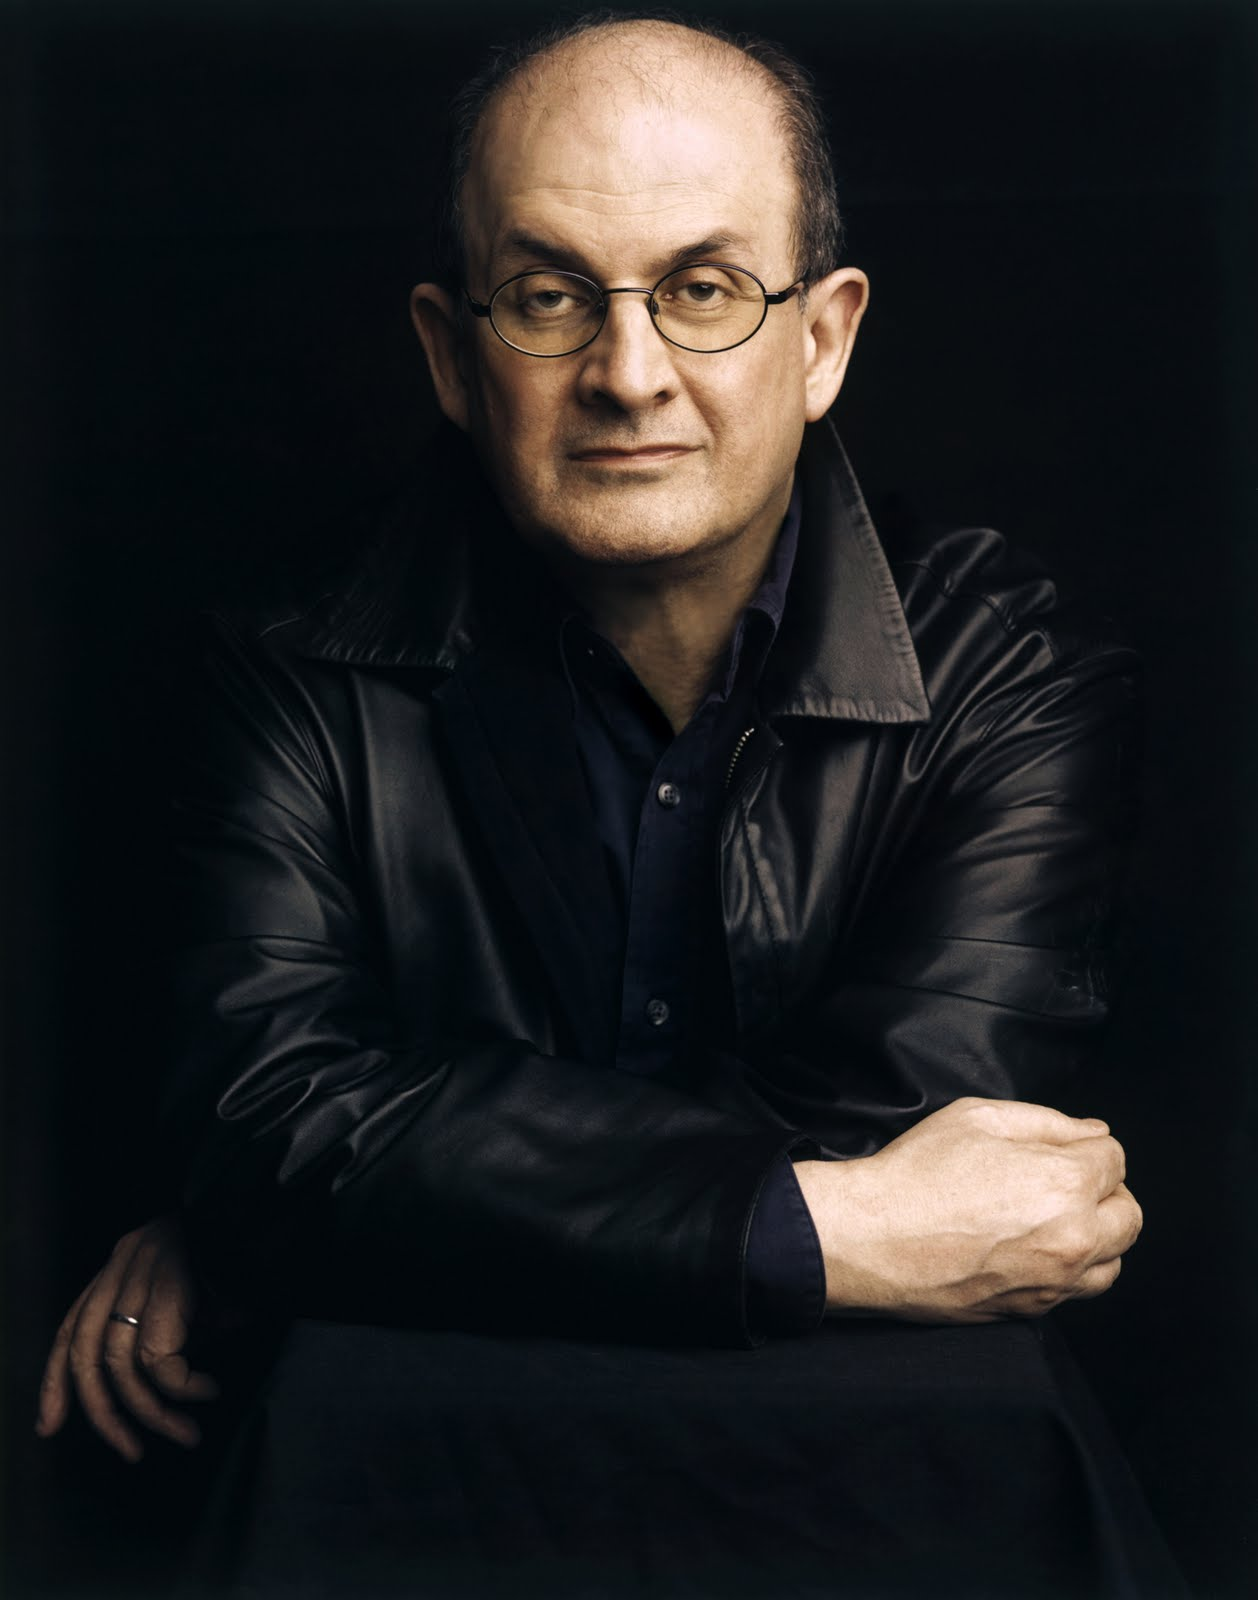 the worrywart salman rushdie imagine there s no heaven this is an essay by salman rushdie titled imagine there s no heaven a letter to the six billionth world citizen which can be found in the book the